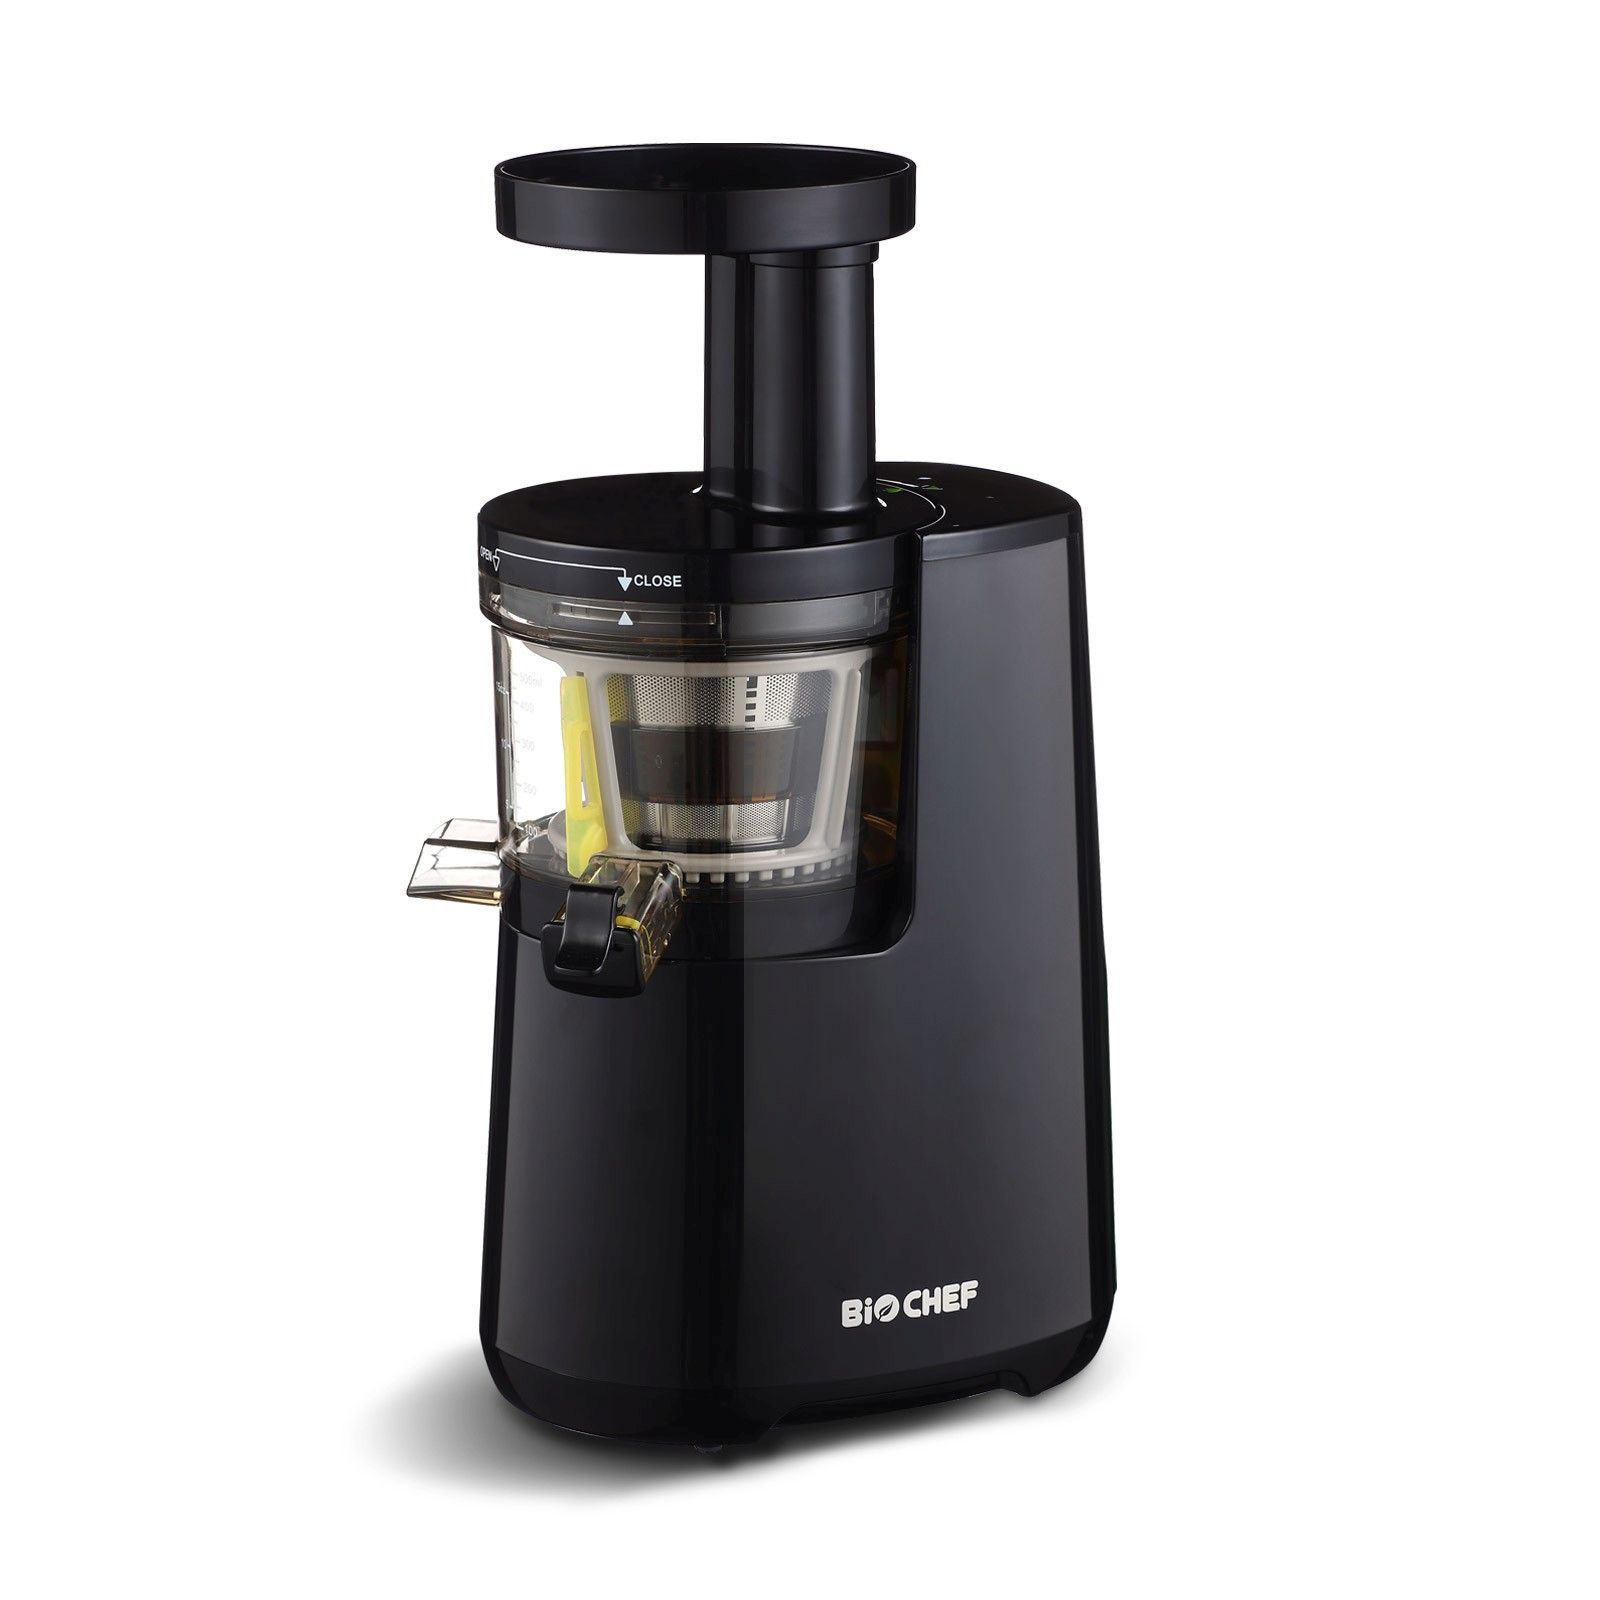 Review Of Aldi Slow Juicer : BioChef Atlas Slow Juicer + Blender Nutriboost Aukro archiv